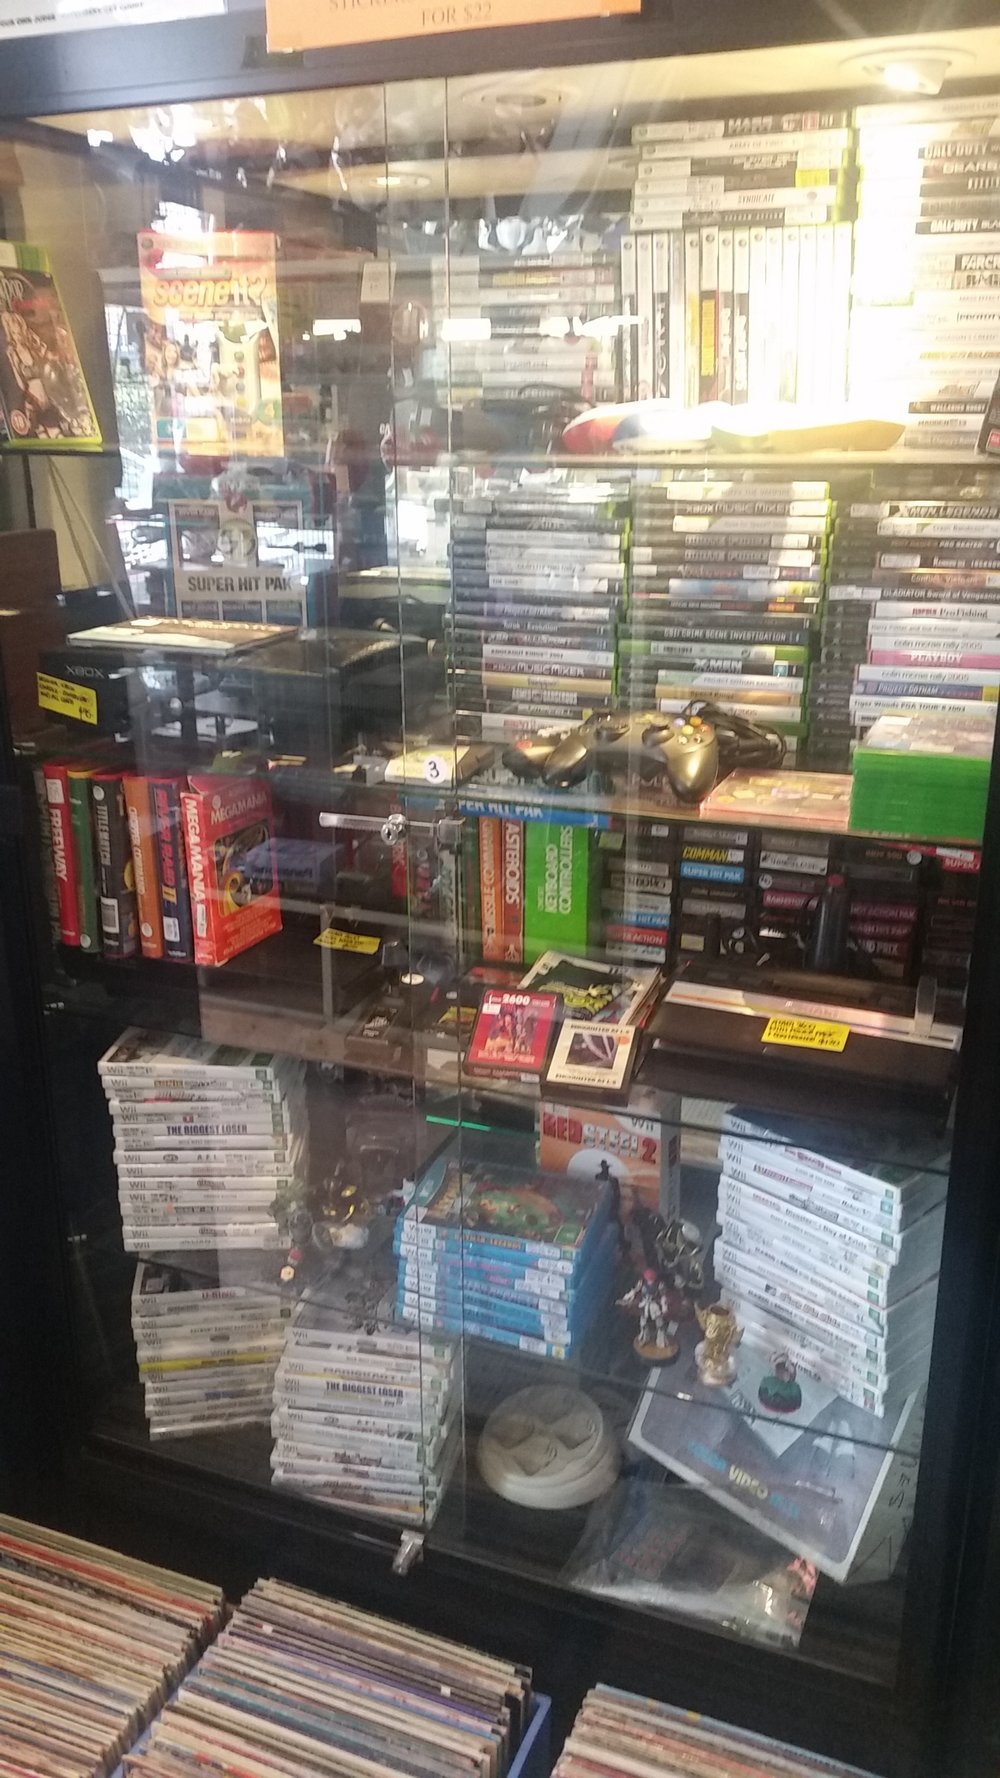 LOOKING FOR ORIGINAL XBOX OR XBOX 360 GAMES?WE ALWAYS HAVE SOME ON THE SHELVES,